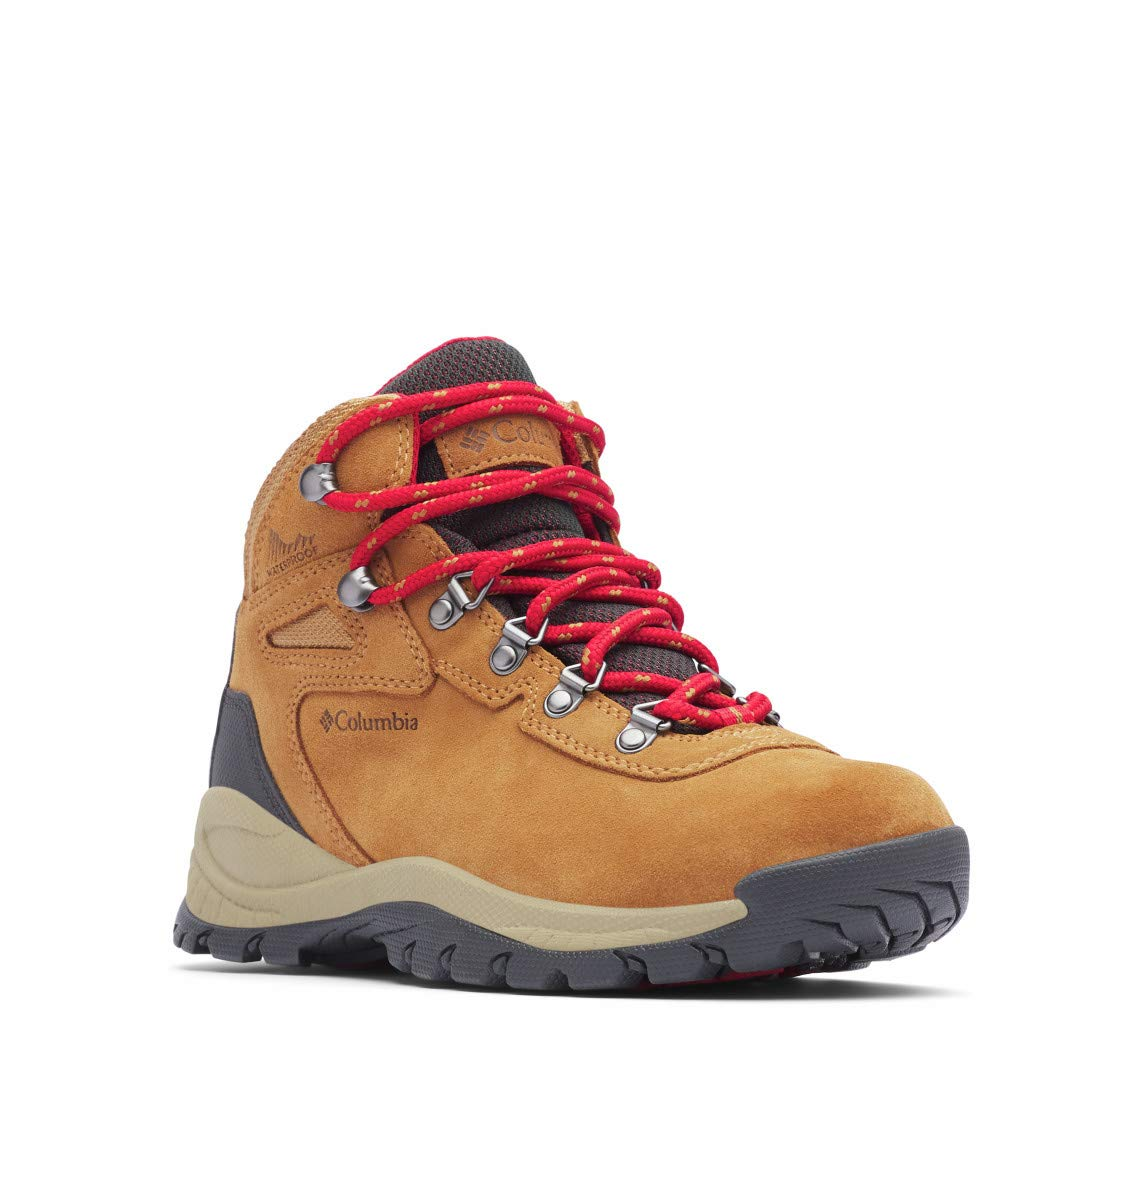 Columbia Women's Newton Ridge Plus, Elk/Mountain Red, 7 Regular US by Columbia